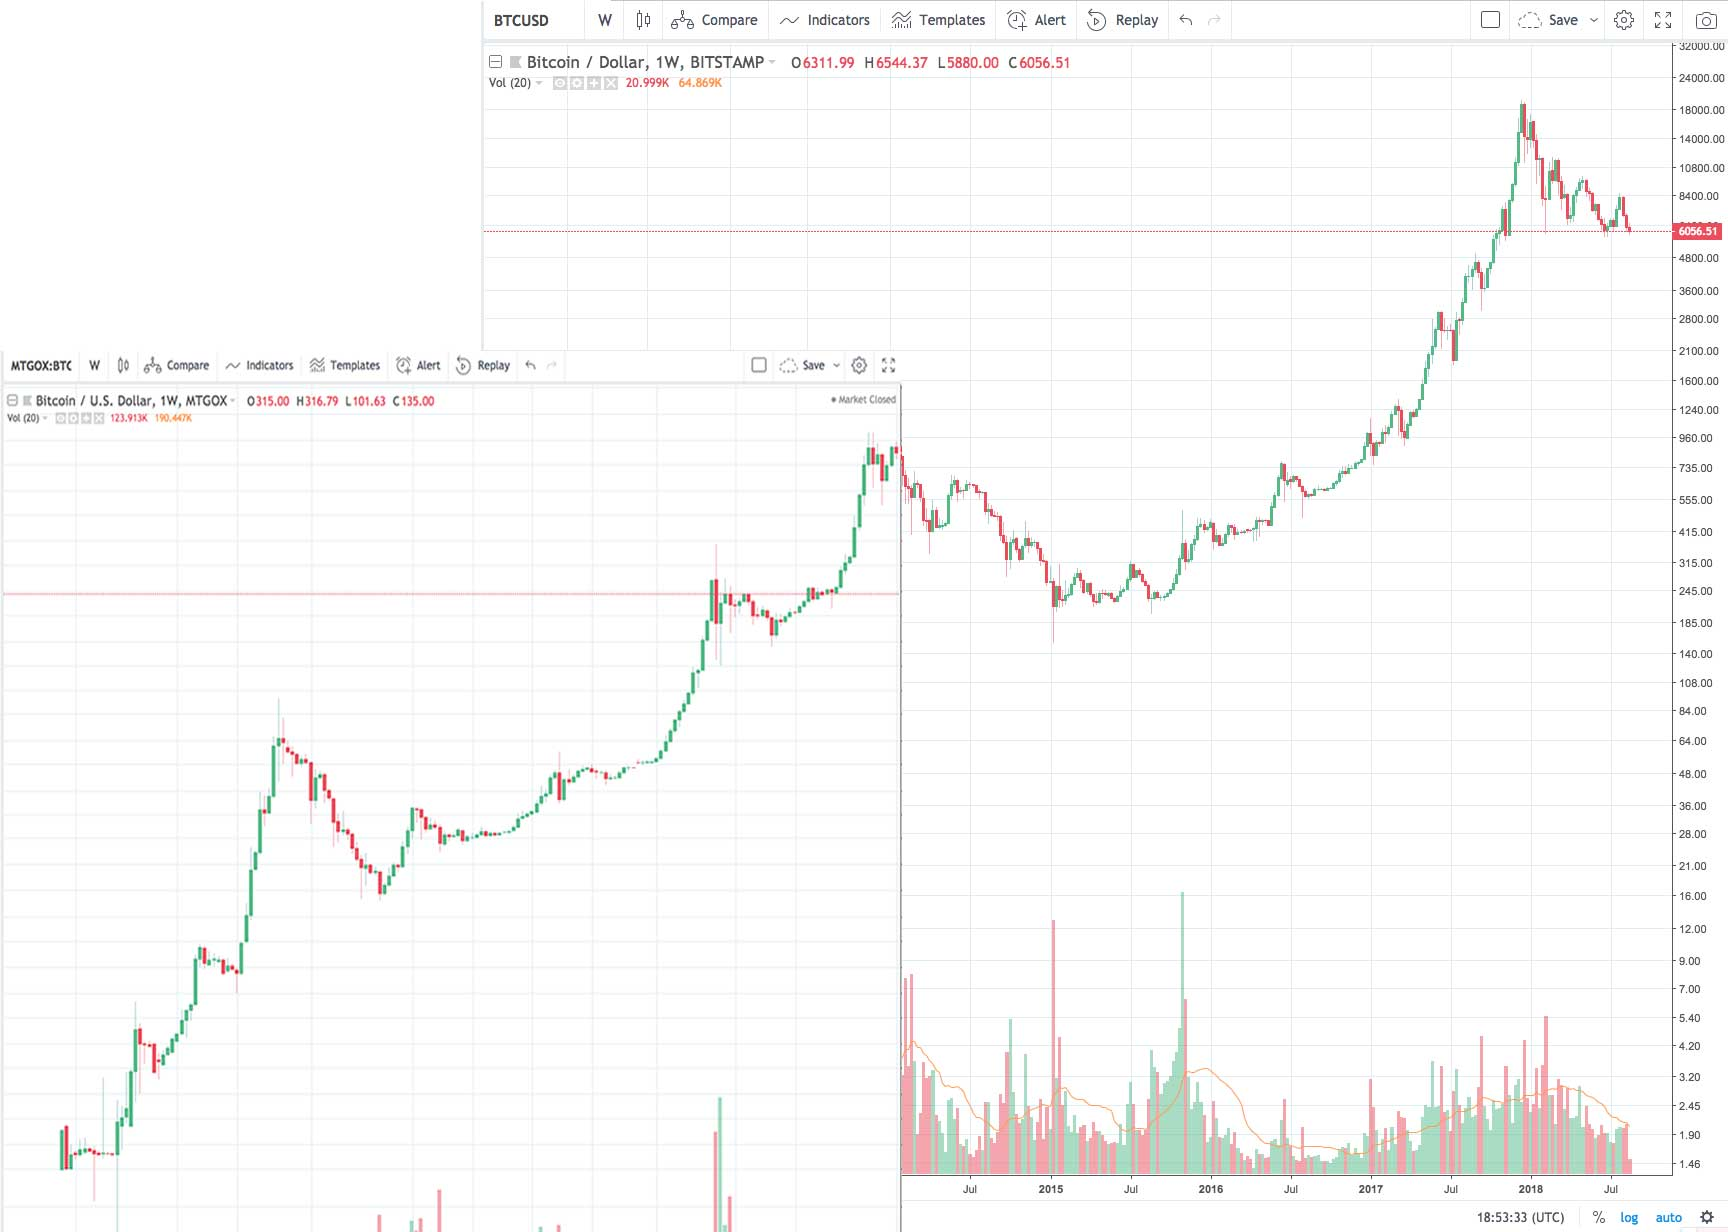 Comparing Bitcoin's 2014 Chart to 2018 - CryptoCurrency Facts